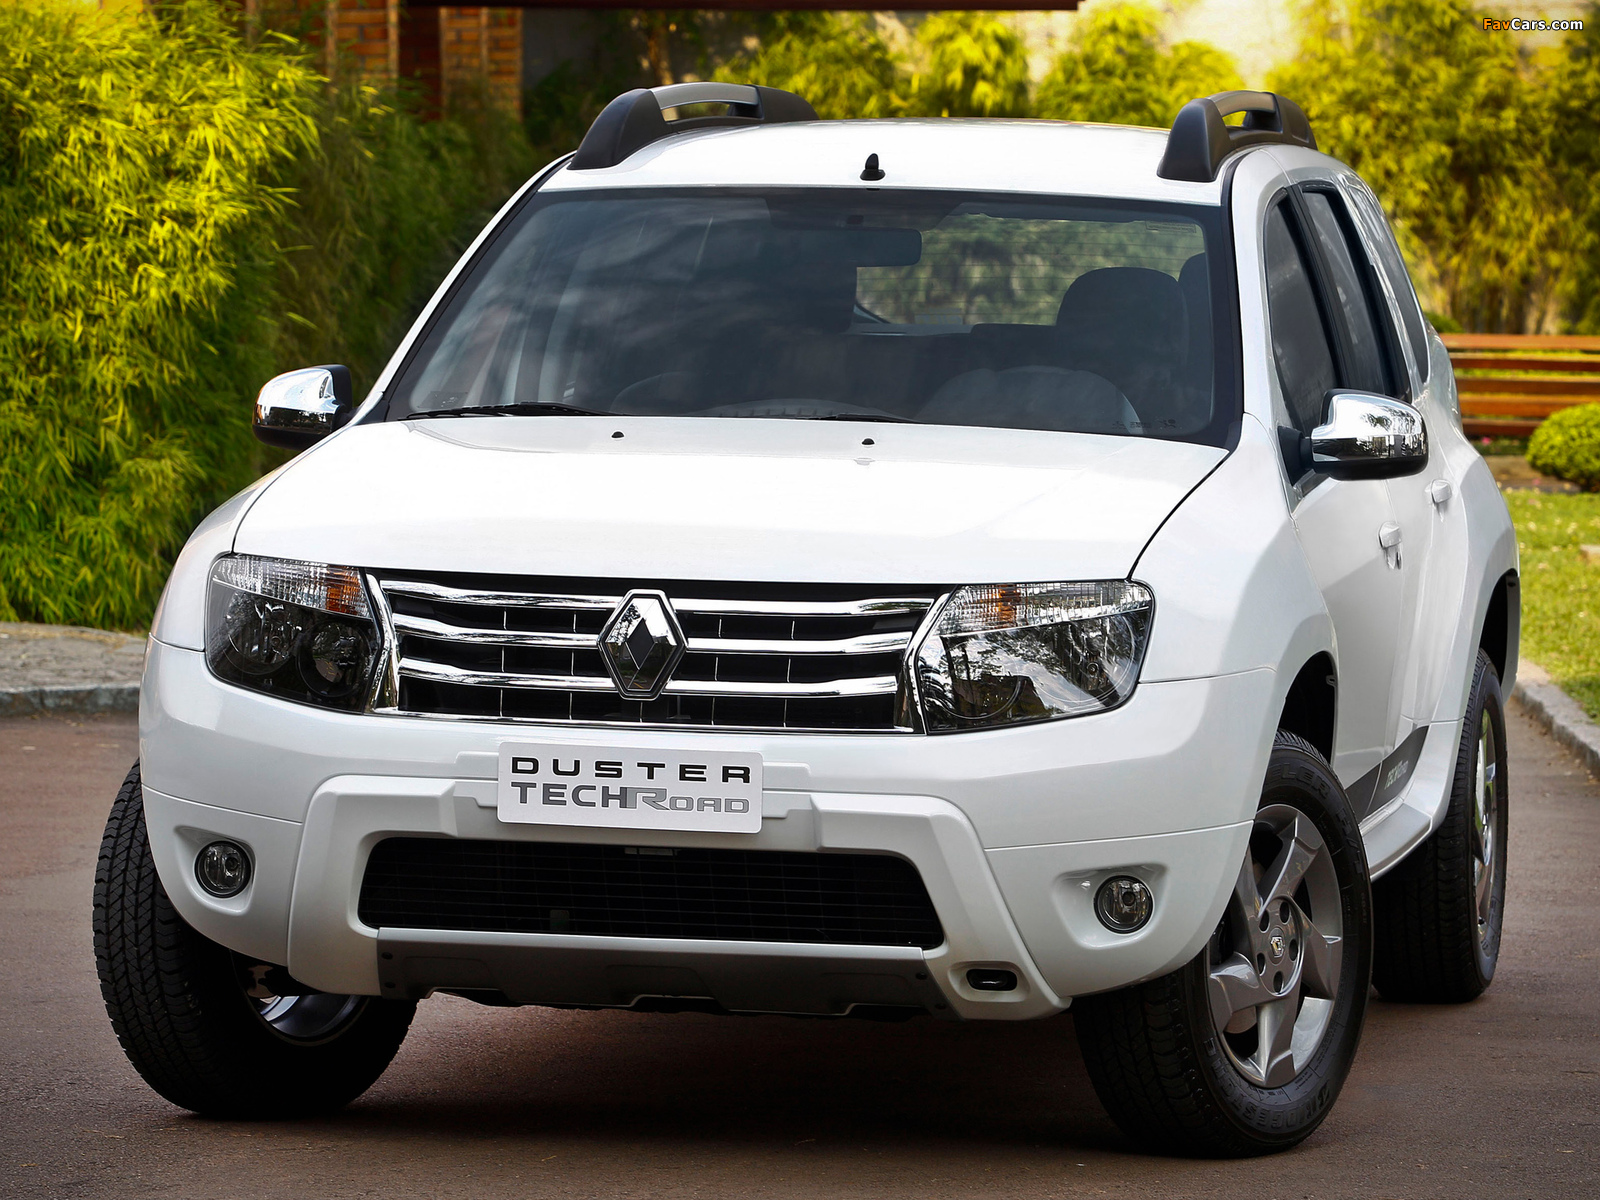 Renault Duster Tech Road 2012 wallpapers (1600 x 1200)